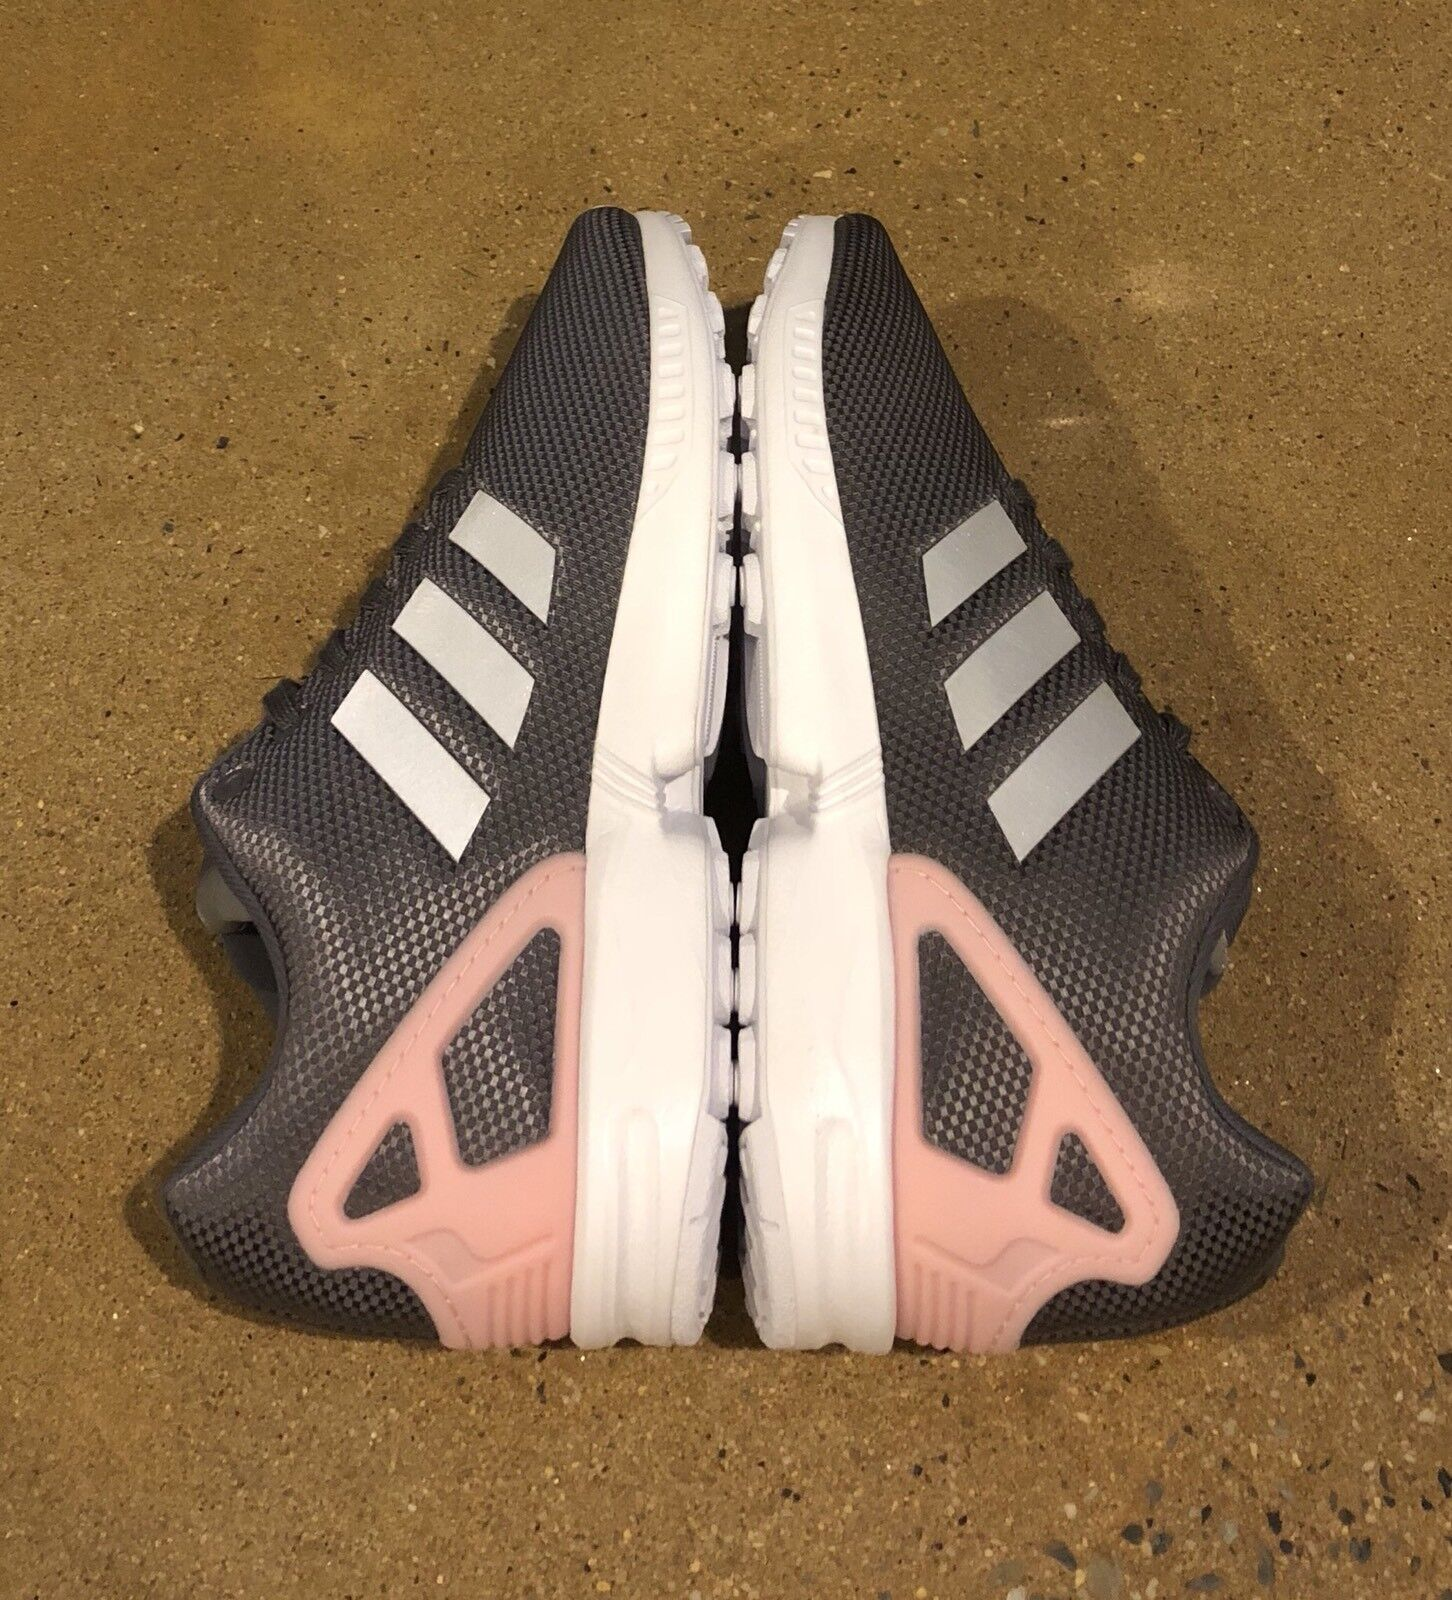 Adidas Zx Flux Women's Size 9.5 US Grey Pink Running Cross Trainer Shoes